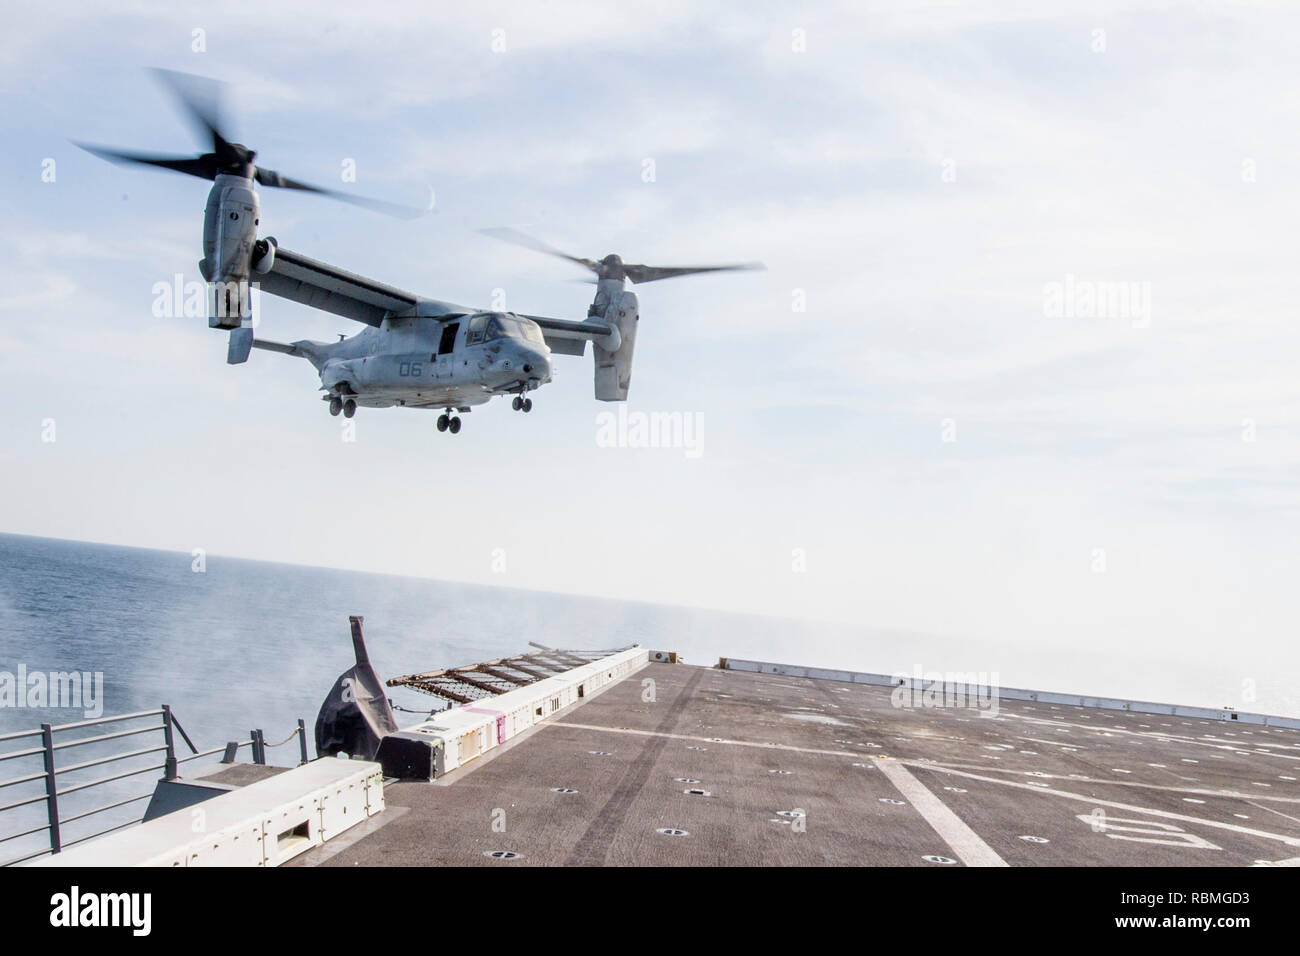 190102-N-PH222-1095 ARABIAN SEA (Jan. 2, 2018) An MV-22 Osprey tiltrotor aircraft, attached to Marine Medium Tiltrotor Squadron (VMM) 166 (Reinforced), prepares to land on the flight deck of the San Antonio-class amphibious transport dock ship USS Anchorage (LPD 23). Anchorage is on a deployment of the Essex Amphibious Ready Group (ARG) and 13th Marine Expeditionary Unit (MEU). The Essex ARG/13th MEU is flexible and persistent Navy-Marine Corps team deployed to the U.S. 5th Fleet area of operations in support of naval operations to ensure maritime stability and security in the Central Region,  - Stock Image